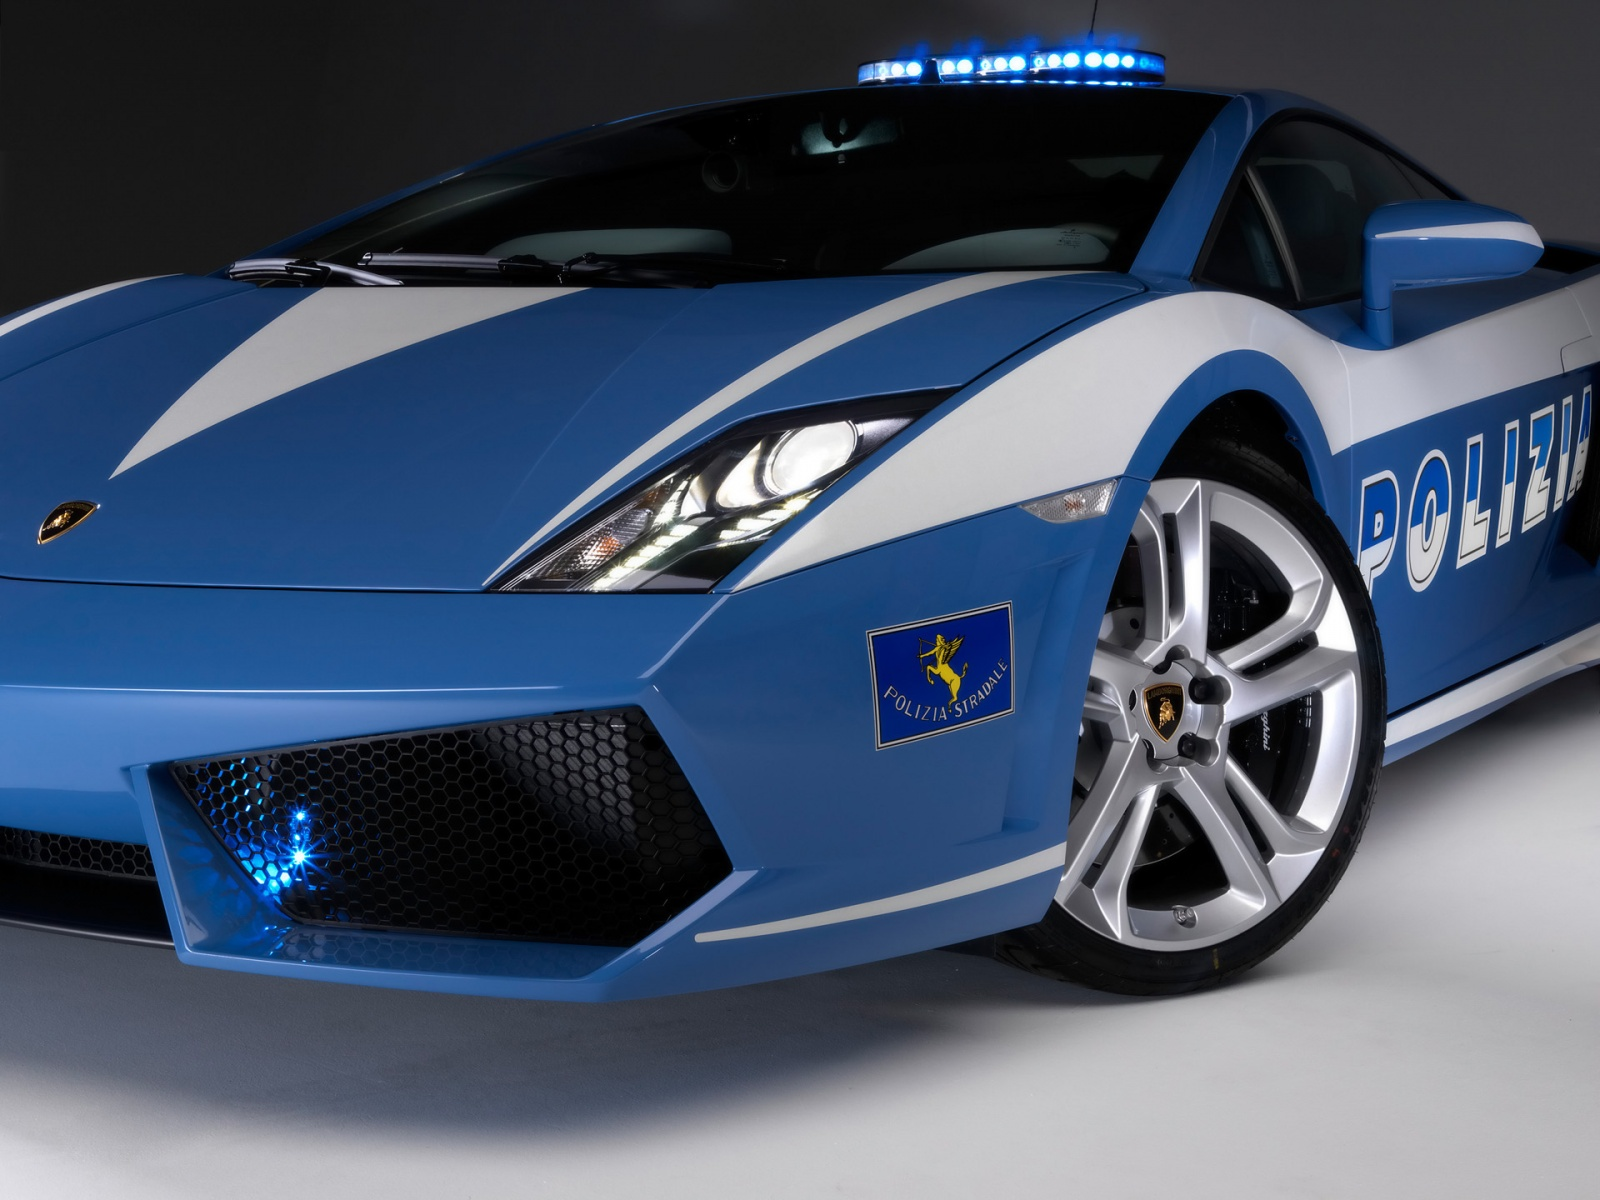 Lamborghini Gallardo Polizia 2009 Wallpapers